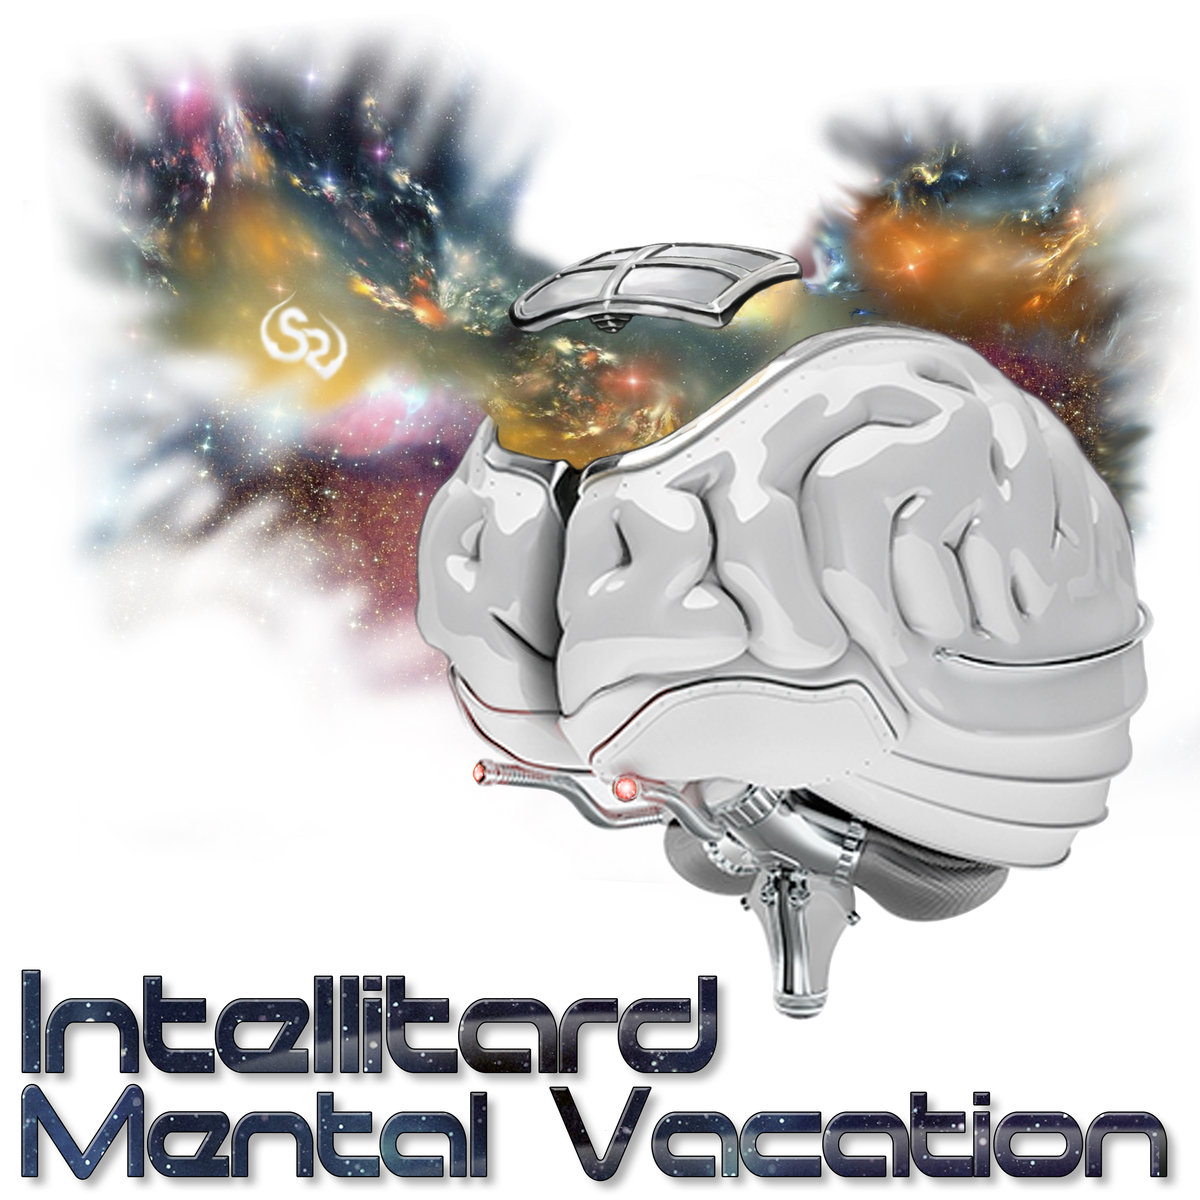 Intellitard - Mental Vacation @ 'Mental Vacation' album (808, bass)